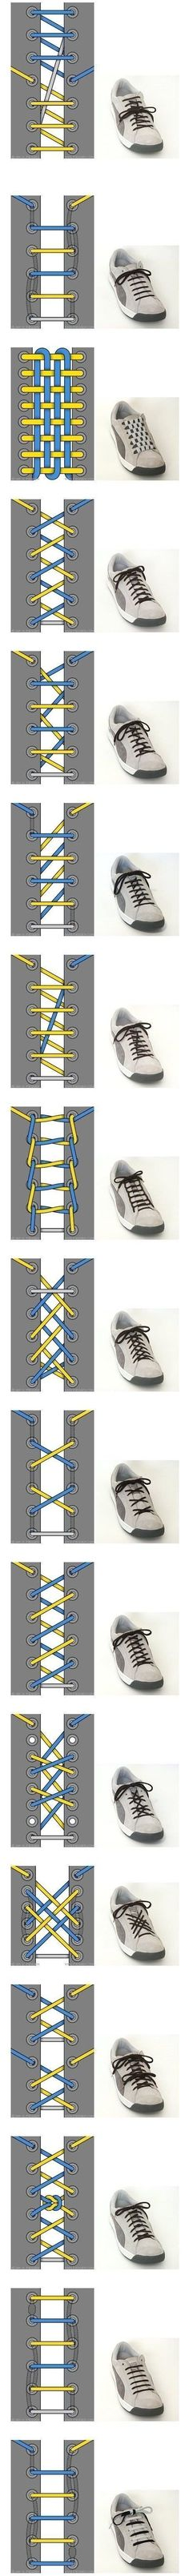 17 Ways To Tie Your Shoelaces. Such an awesome idea!